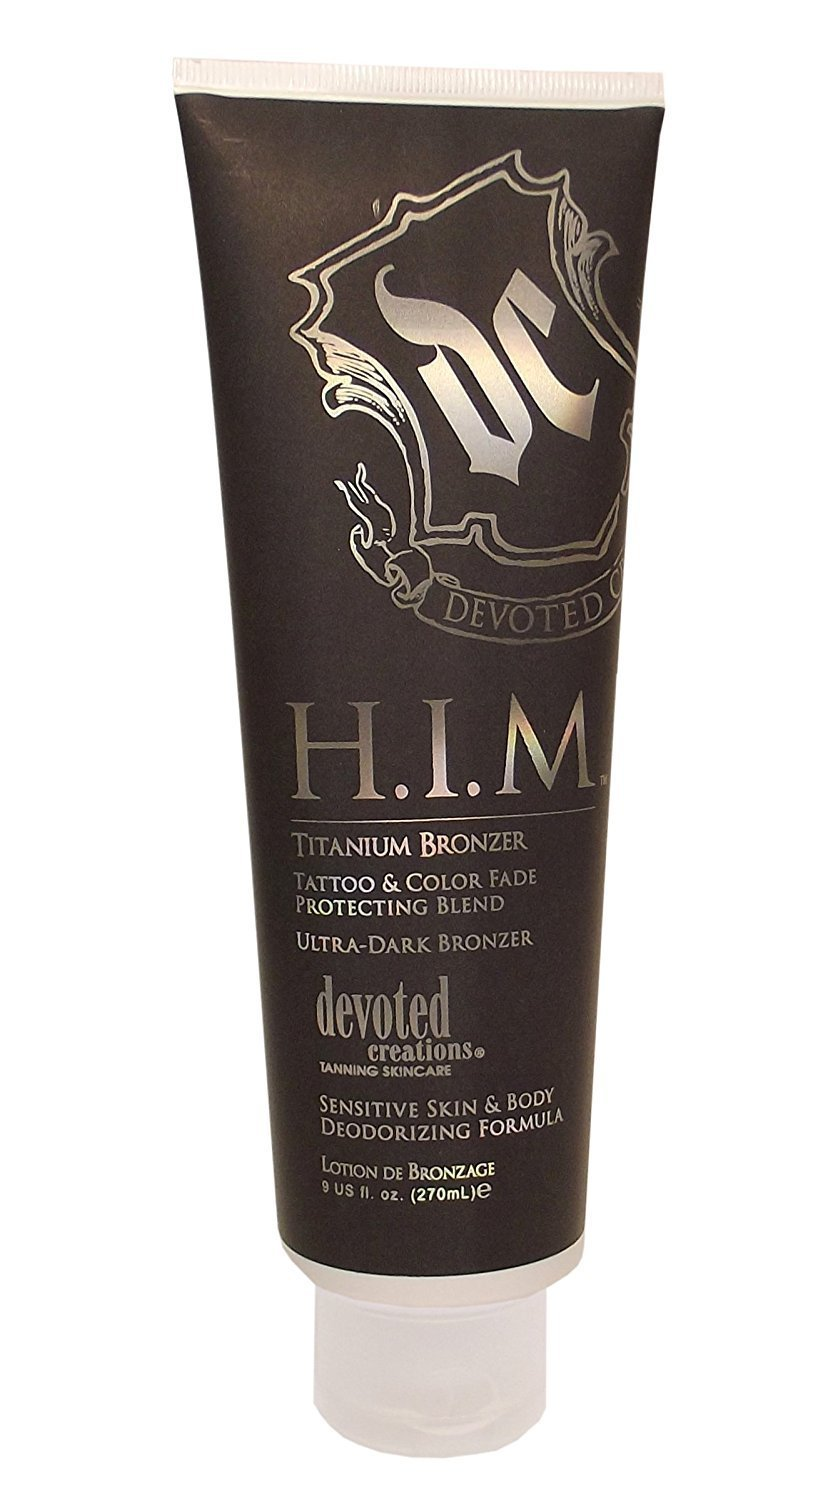 HIM TITANIUM BRONZER tanning lotion Devoted Creations